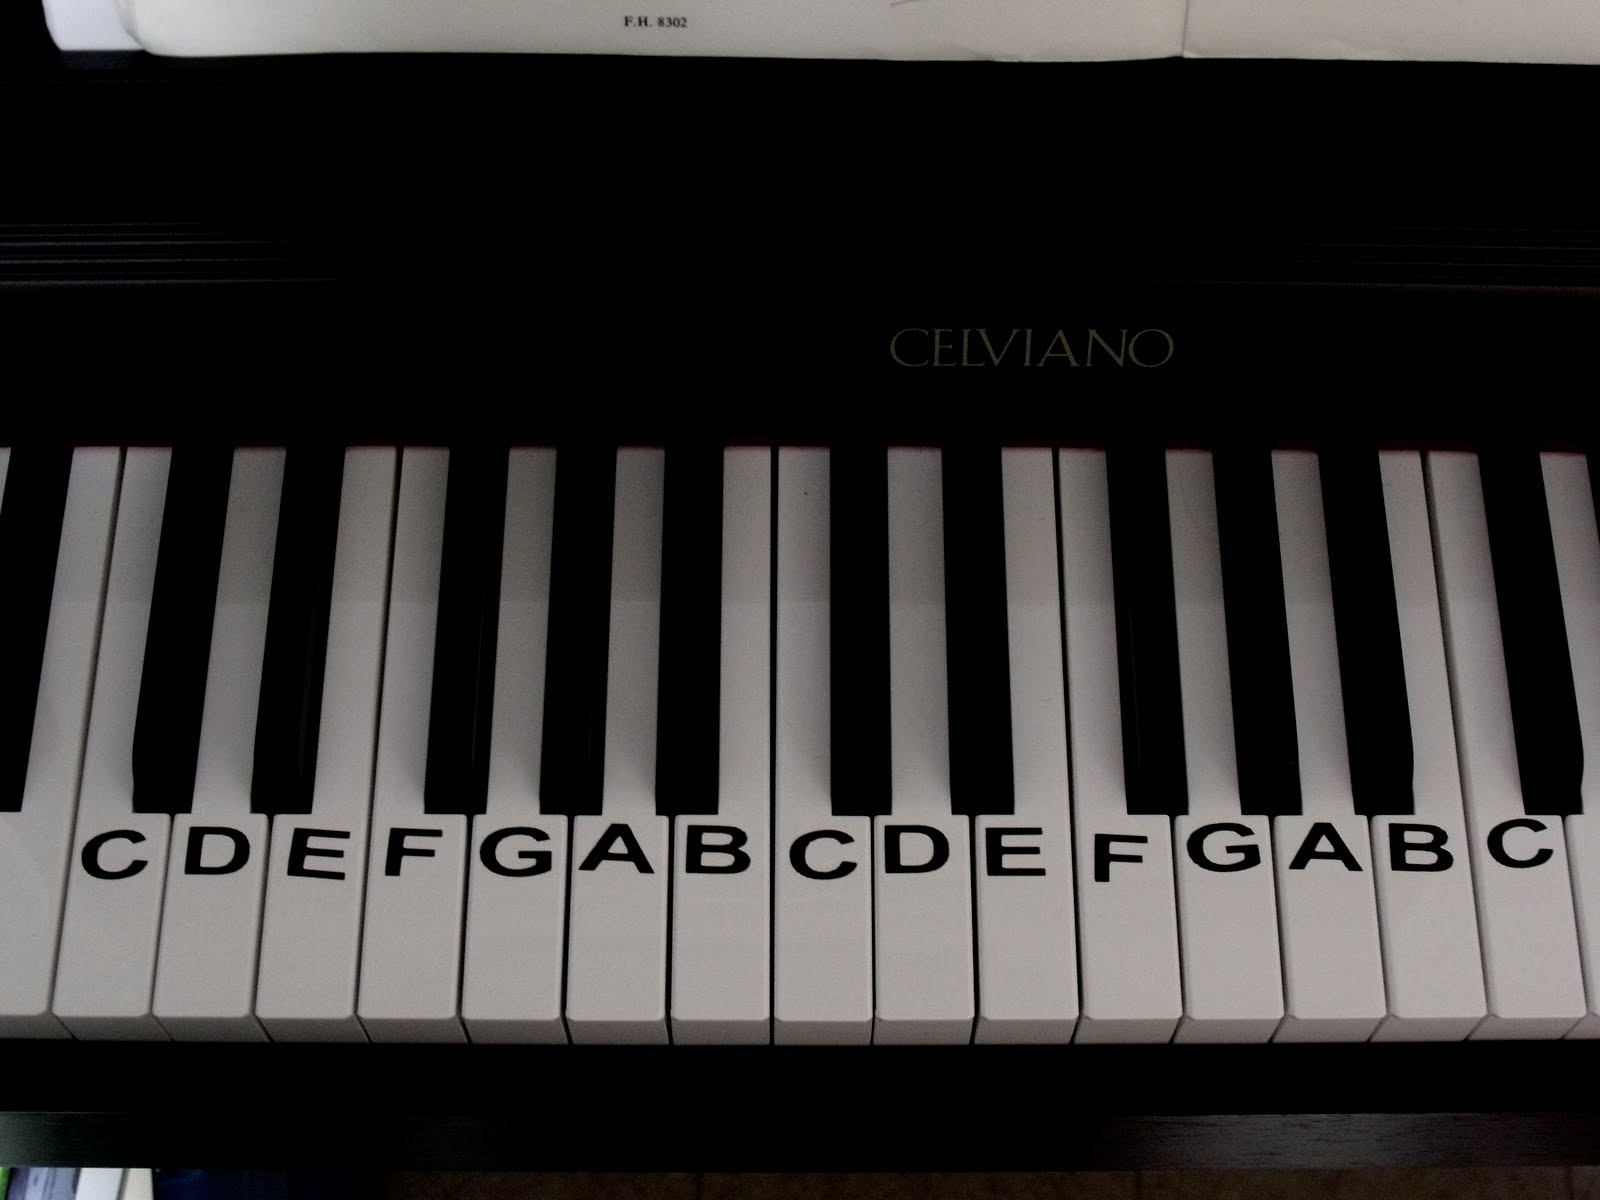 Images of Piano Keys Labeled Letters - industrious info